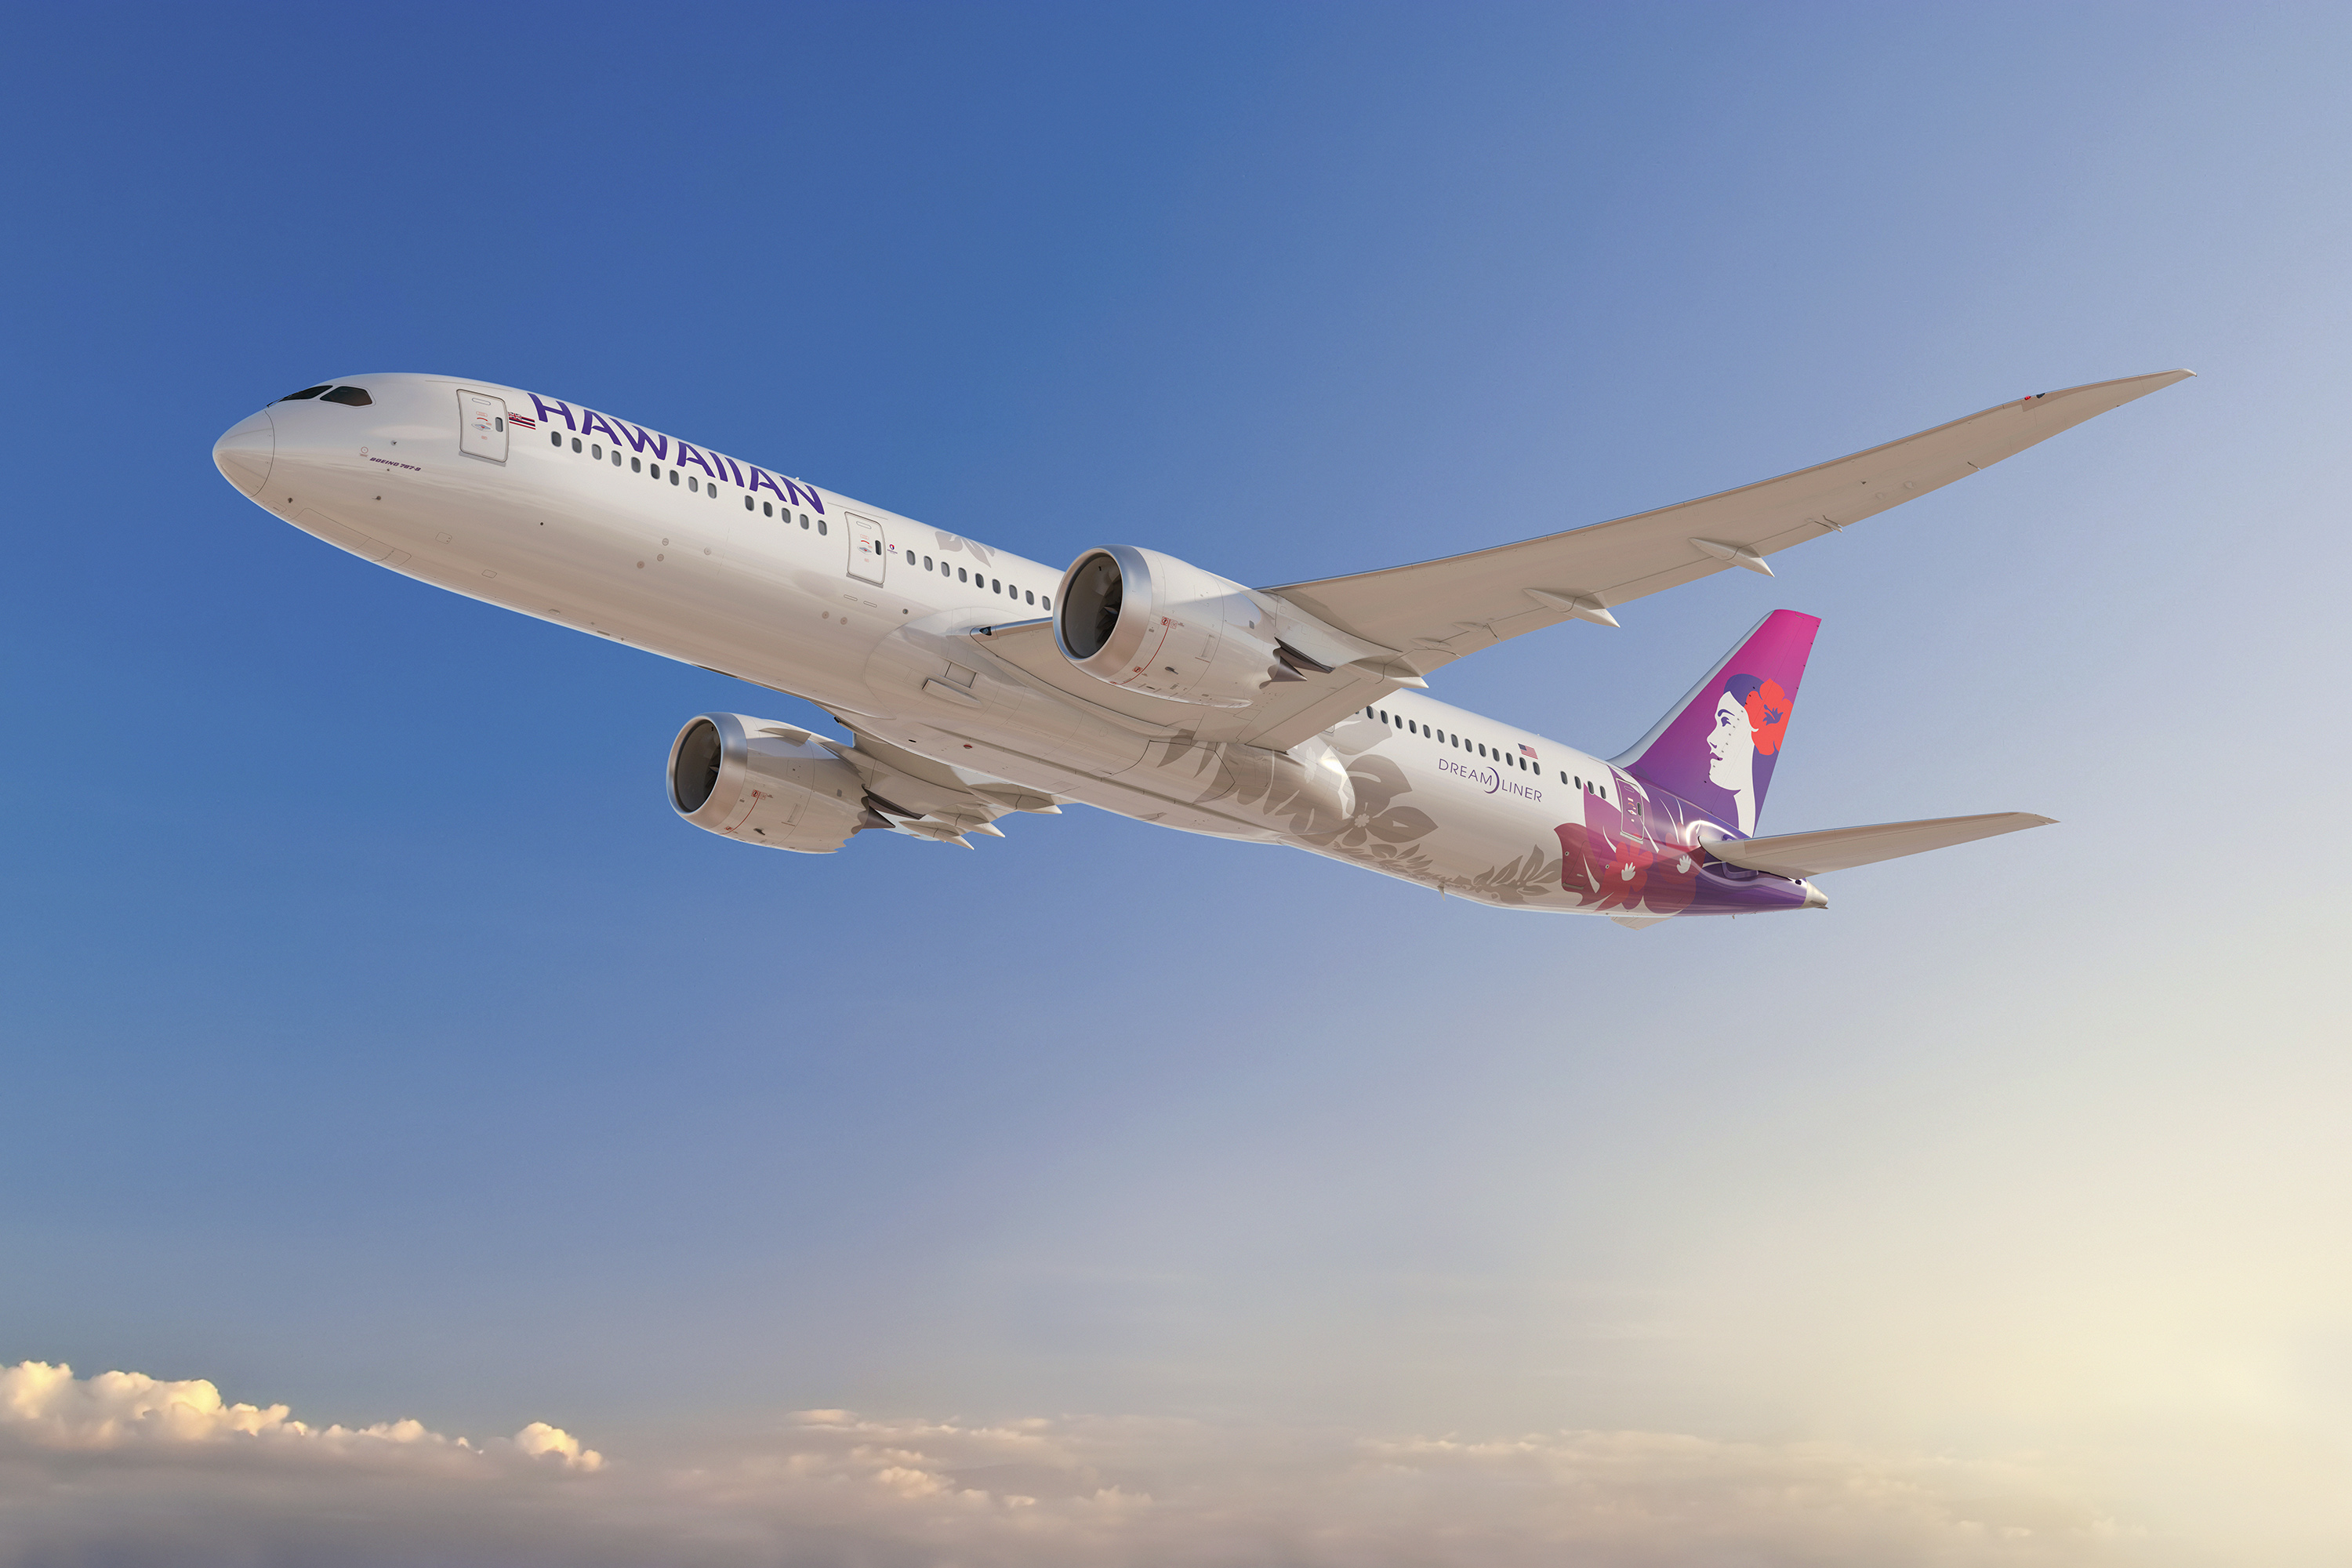 Hawaiian Airlines Dreamliner